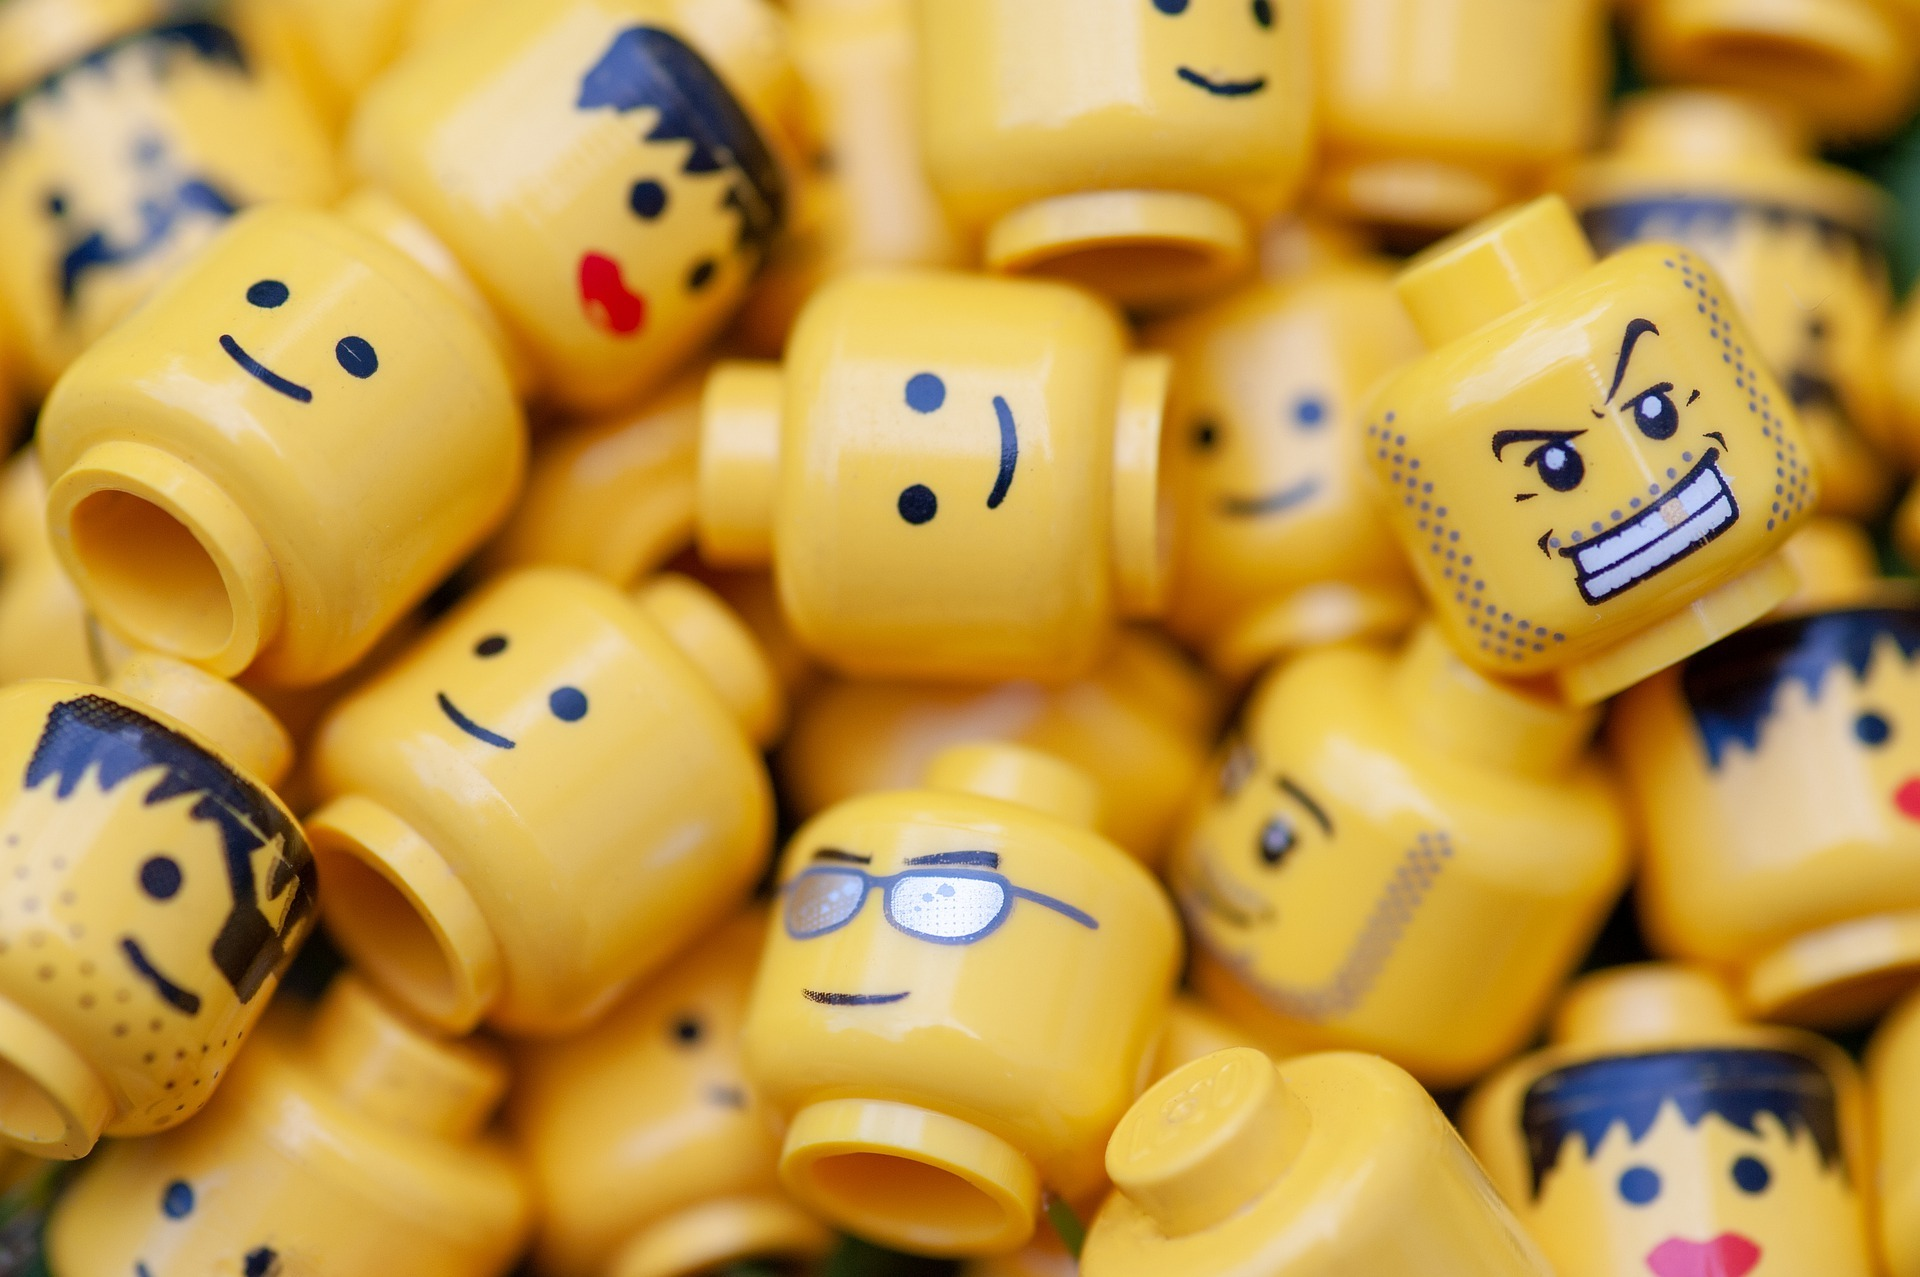 Melbourne is getting its first certified Lego store